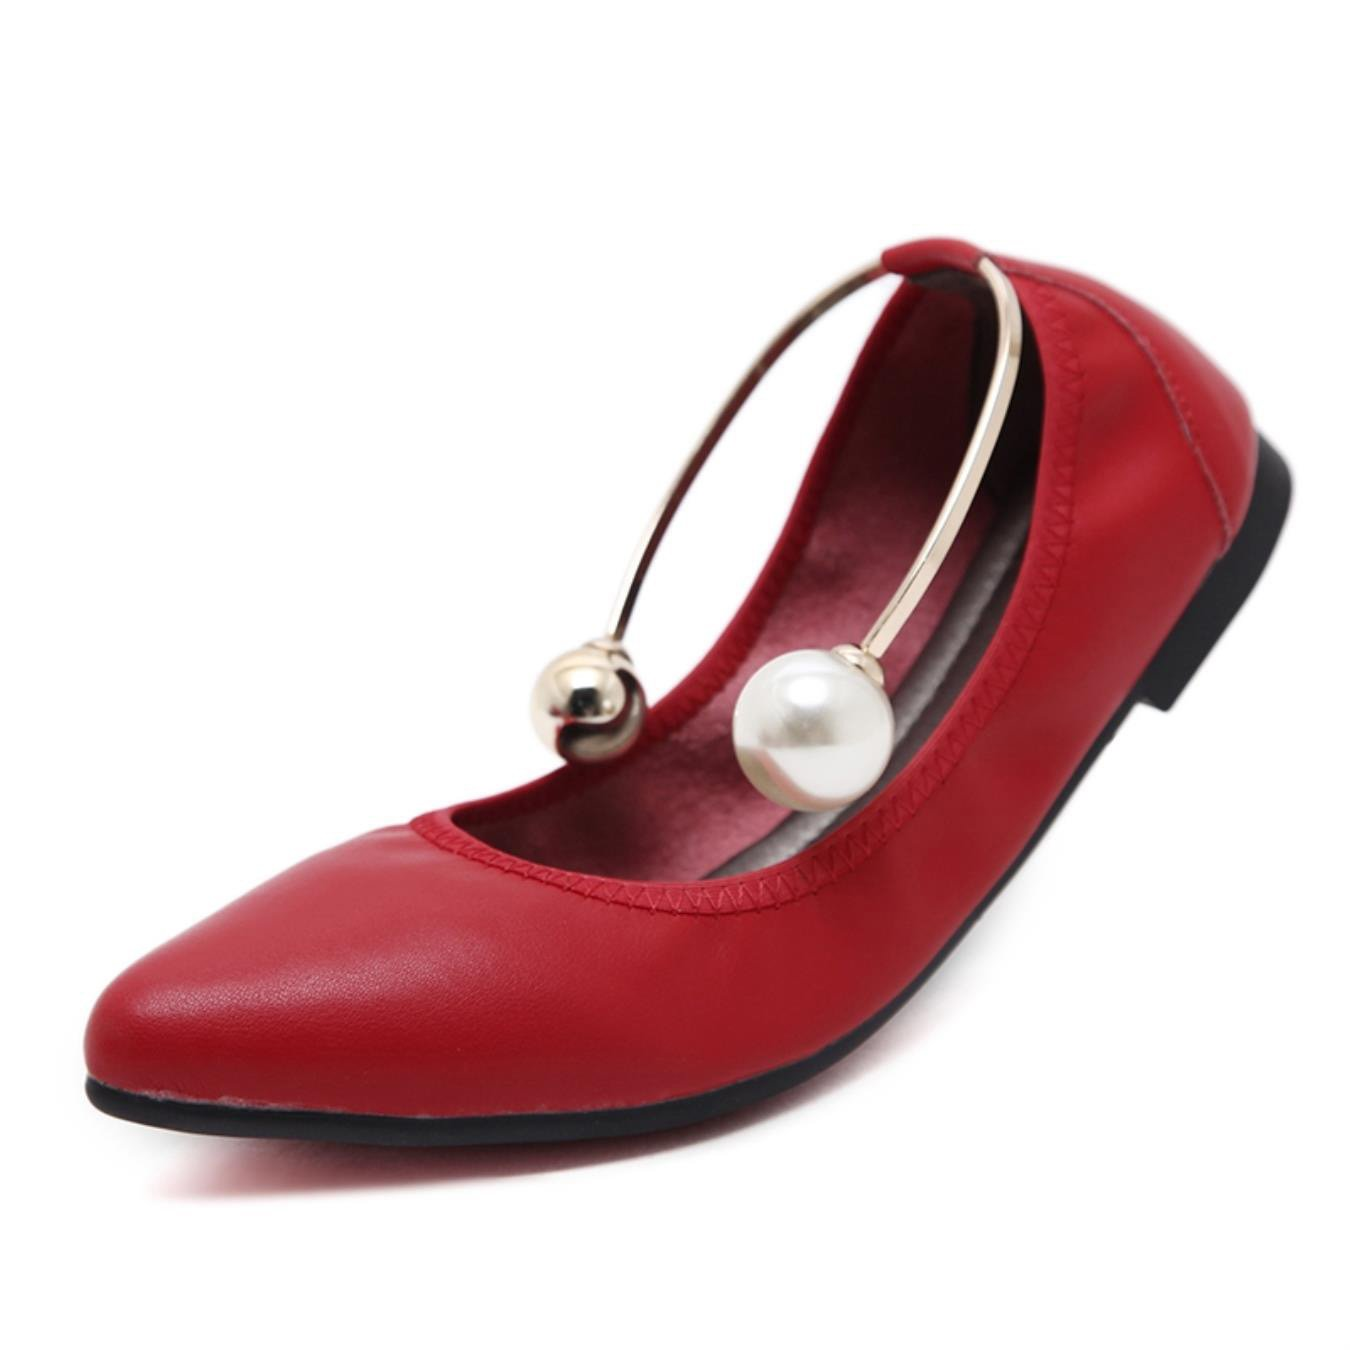 Dancing Soft flat shoes for women Leather String Bead pointed toe flats Top quality